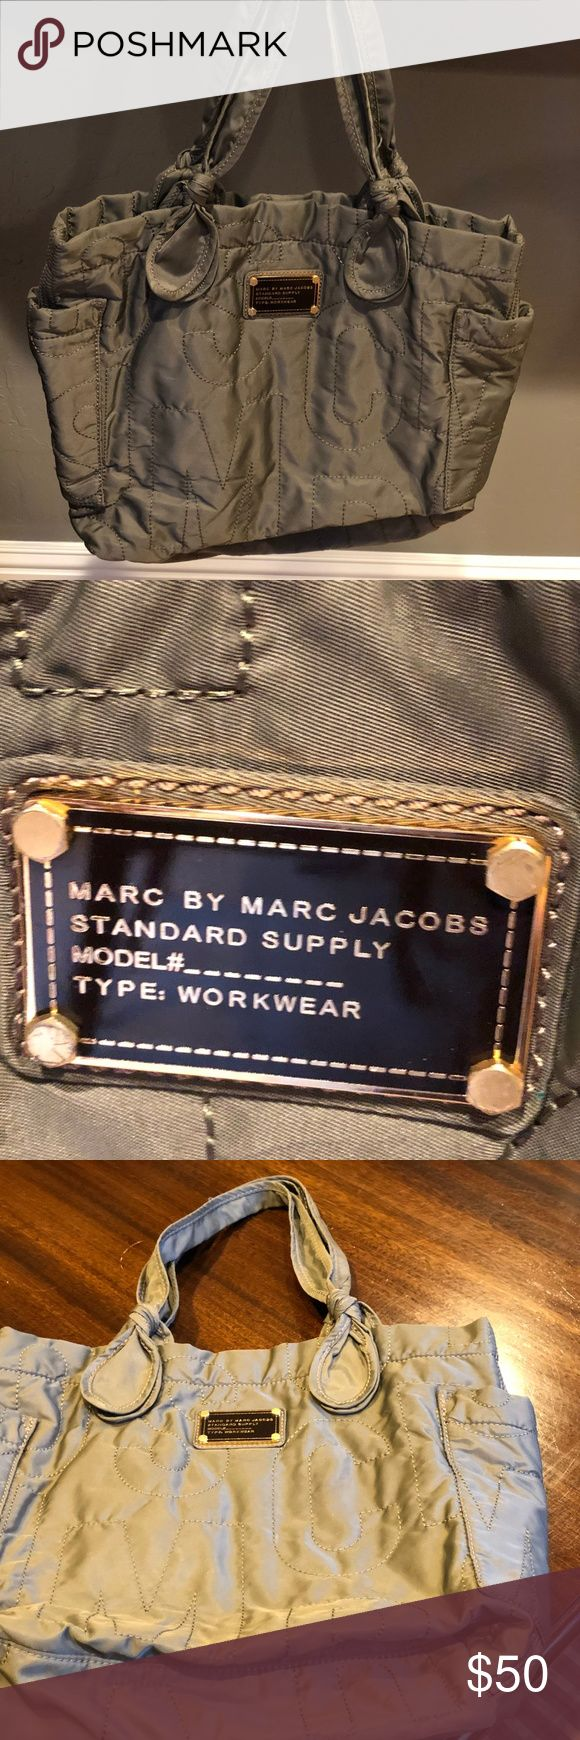 Marc by Marc Jacobs Grey Tote Bag Great tote bag.  Light wear... very clean but there are a few spots on the bottom (inside) of the bag.  Tried to take pictures, but hard to see. Overall in very good condition. Marc By Marc Jacobs Bags Totes